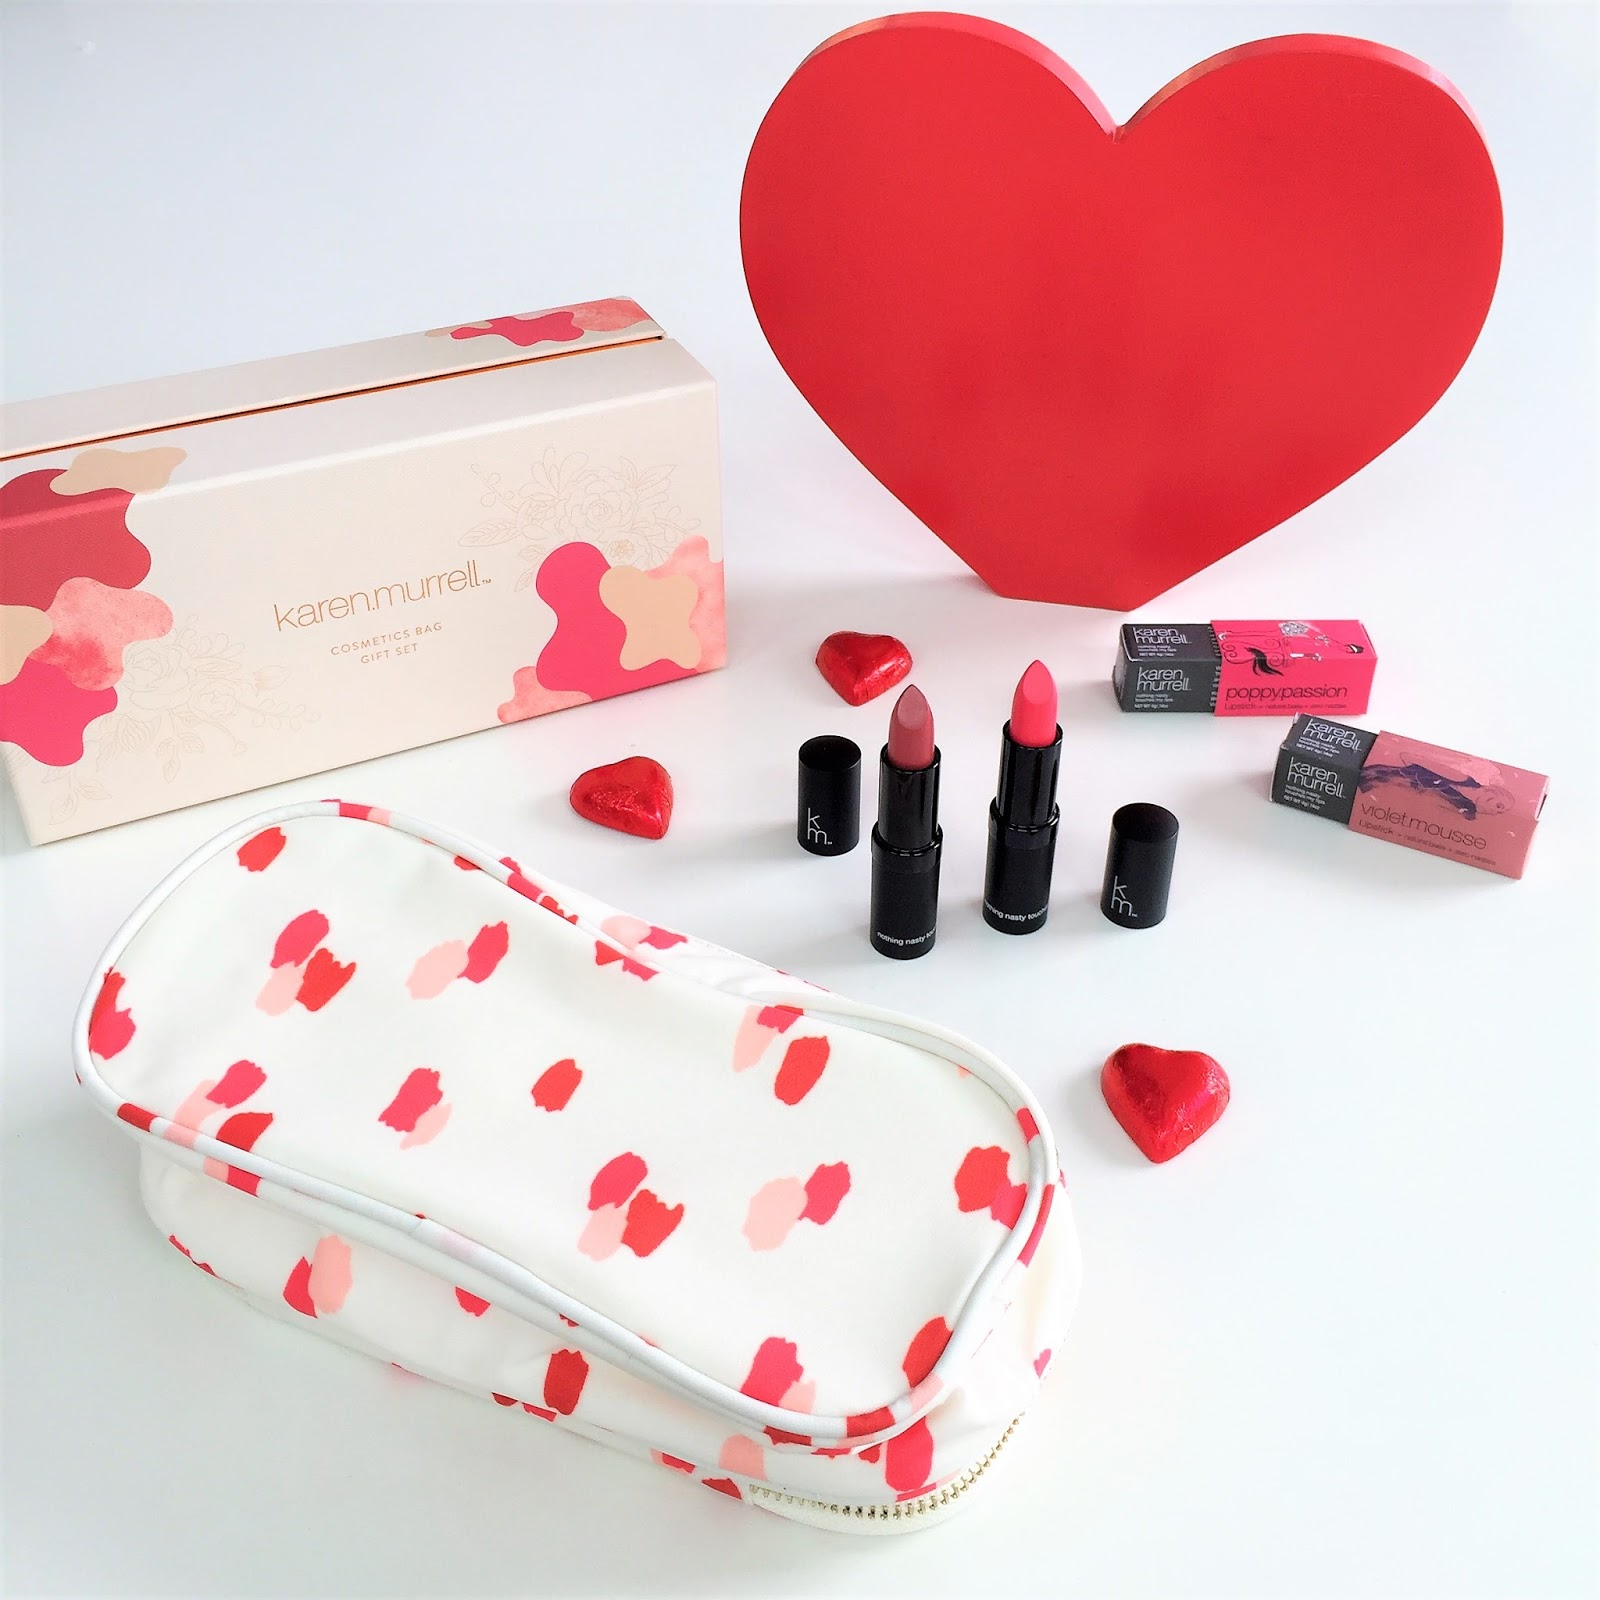 KAREN MURRELL VALENTINE'S DAY GIFT IDEA | The Beauty & Lifestyle ...